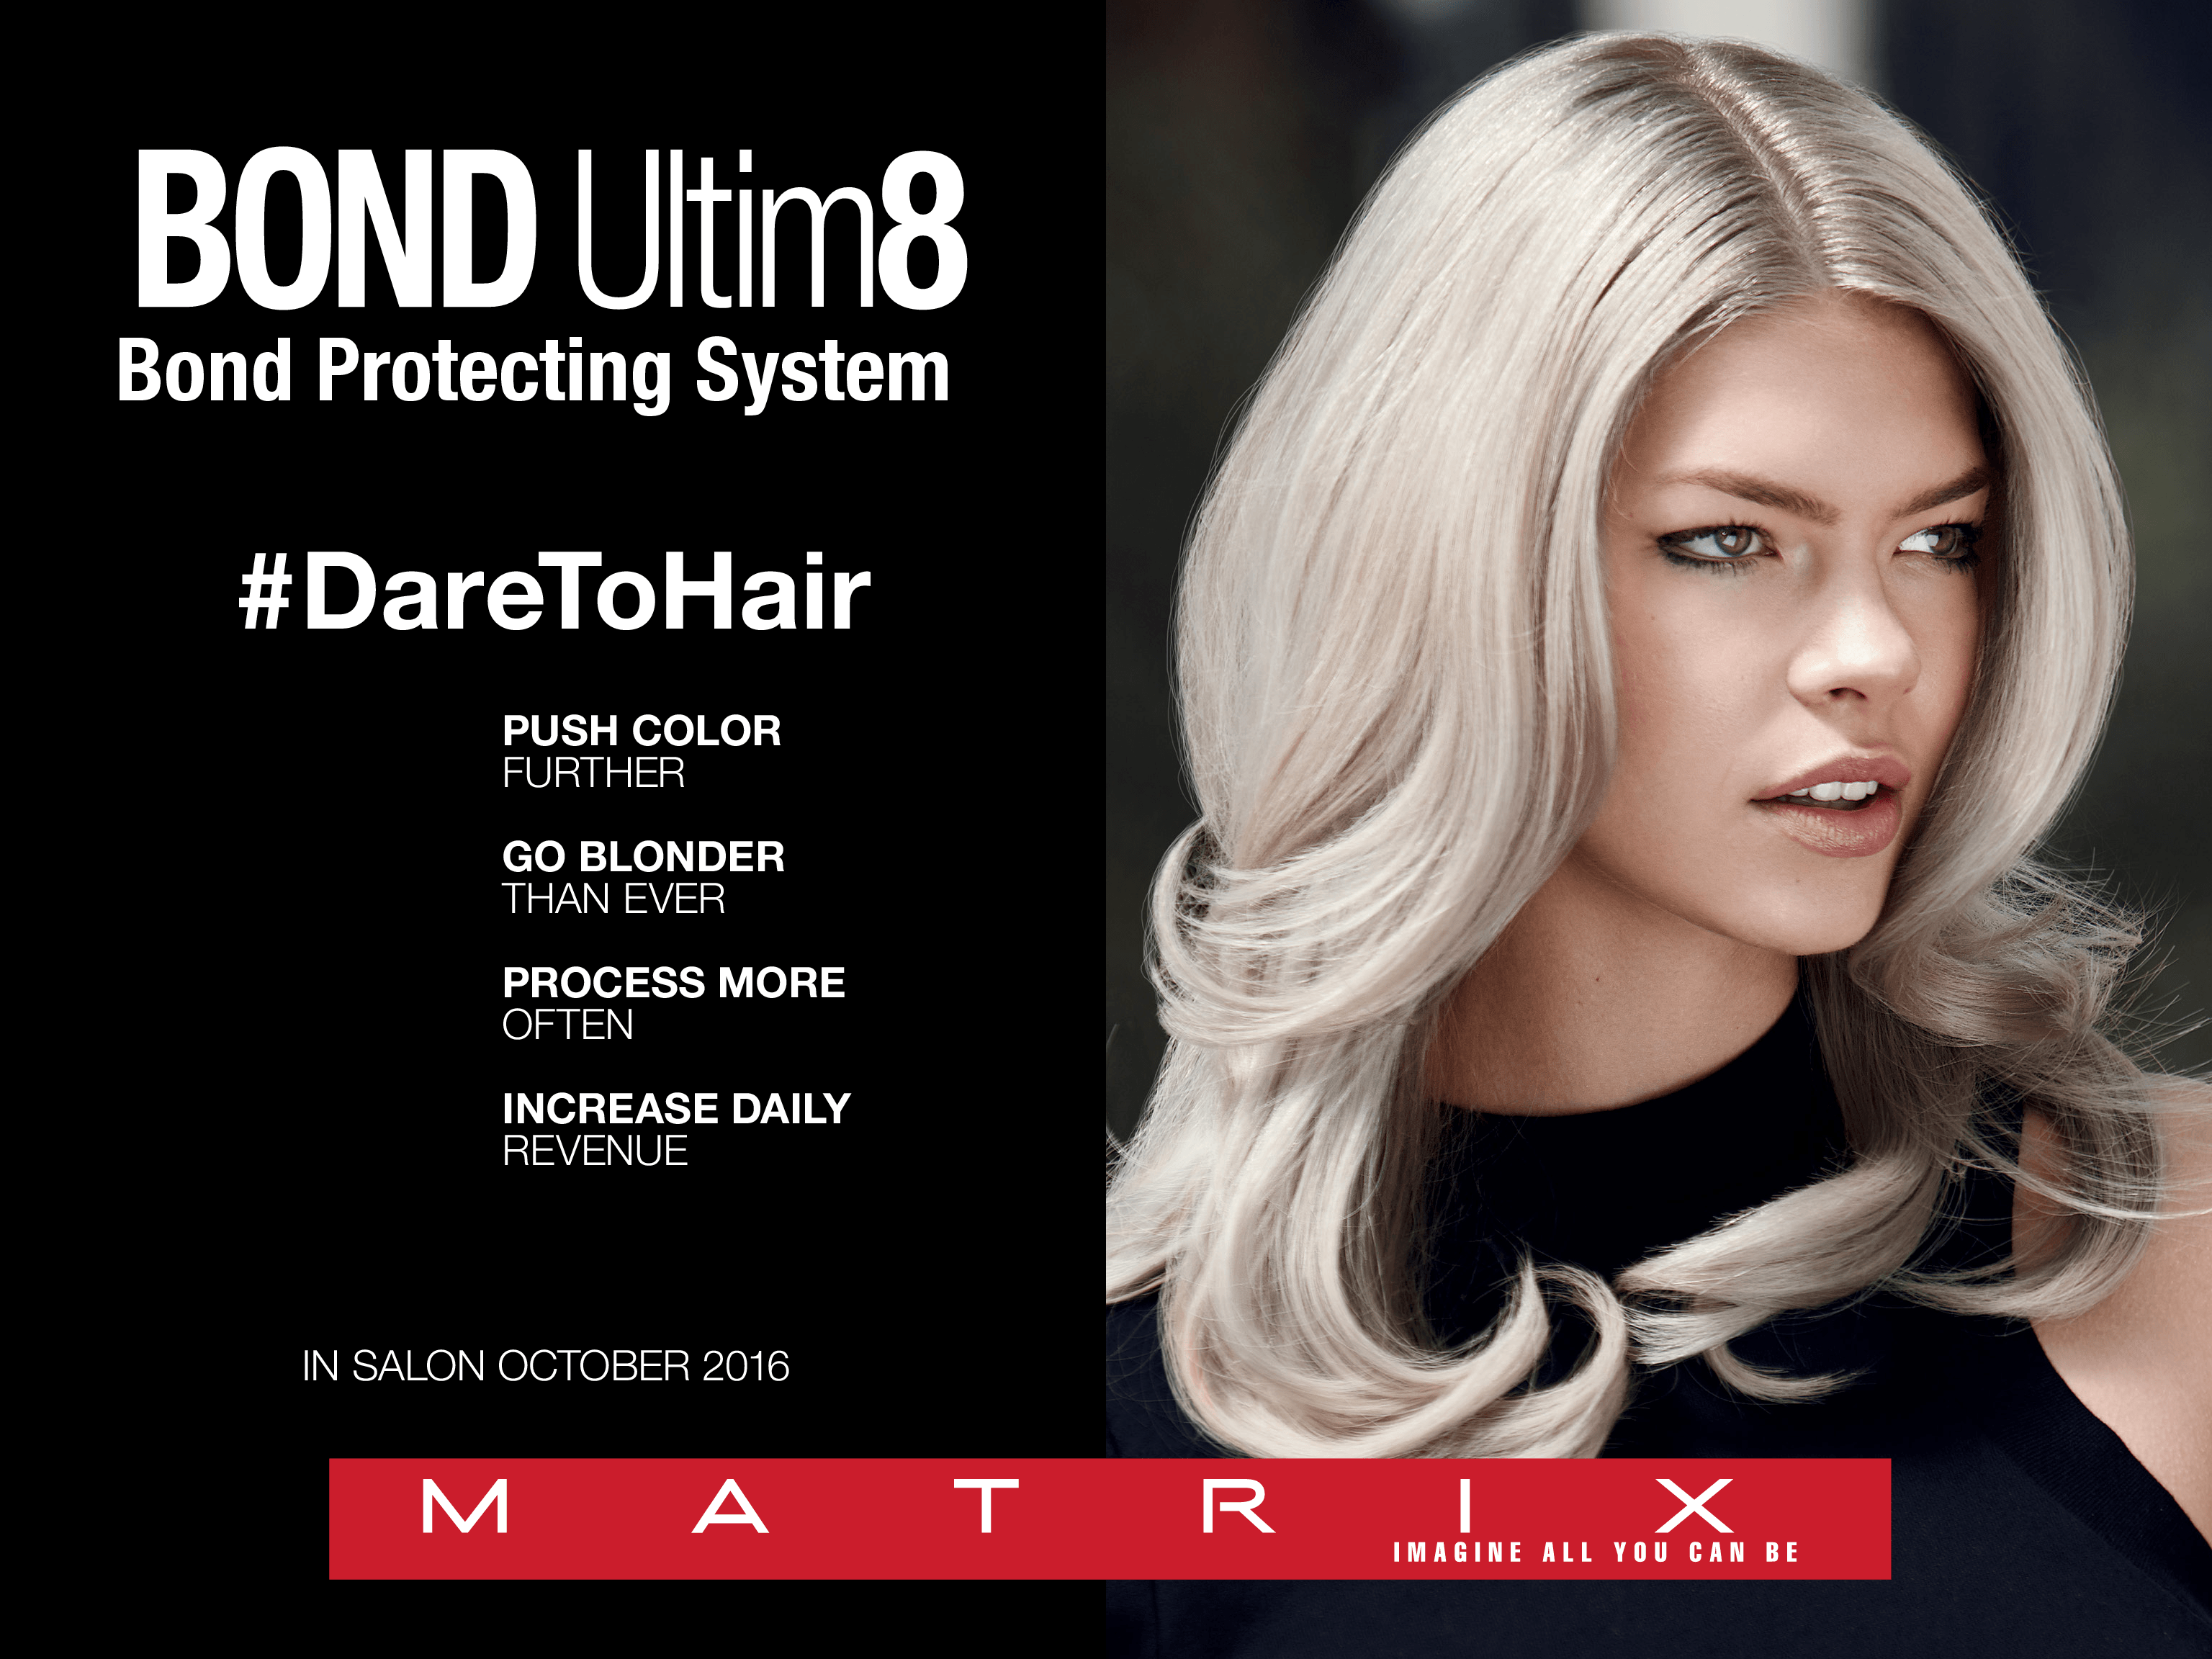 Introducing Bond Ultim8 - Matrix Bond Ultim8